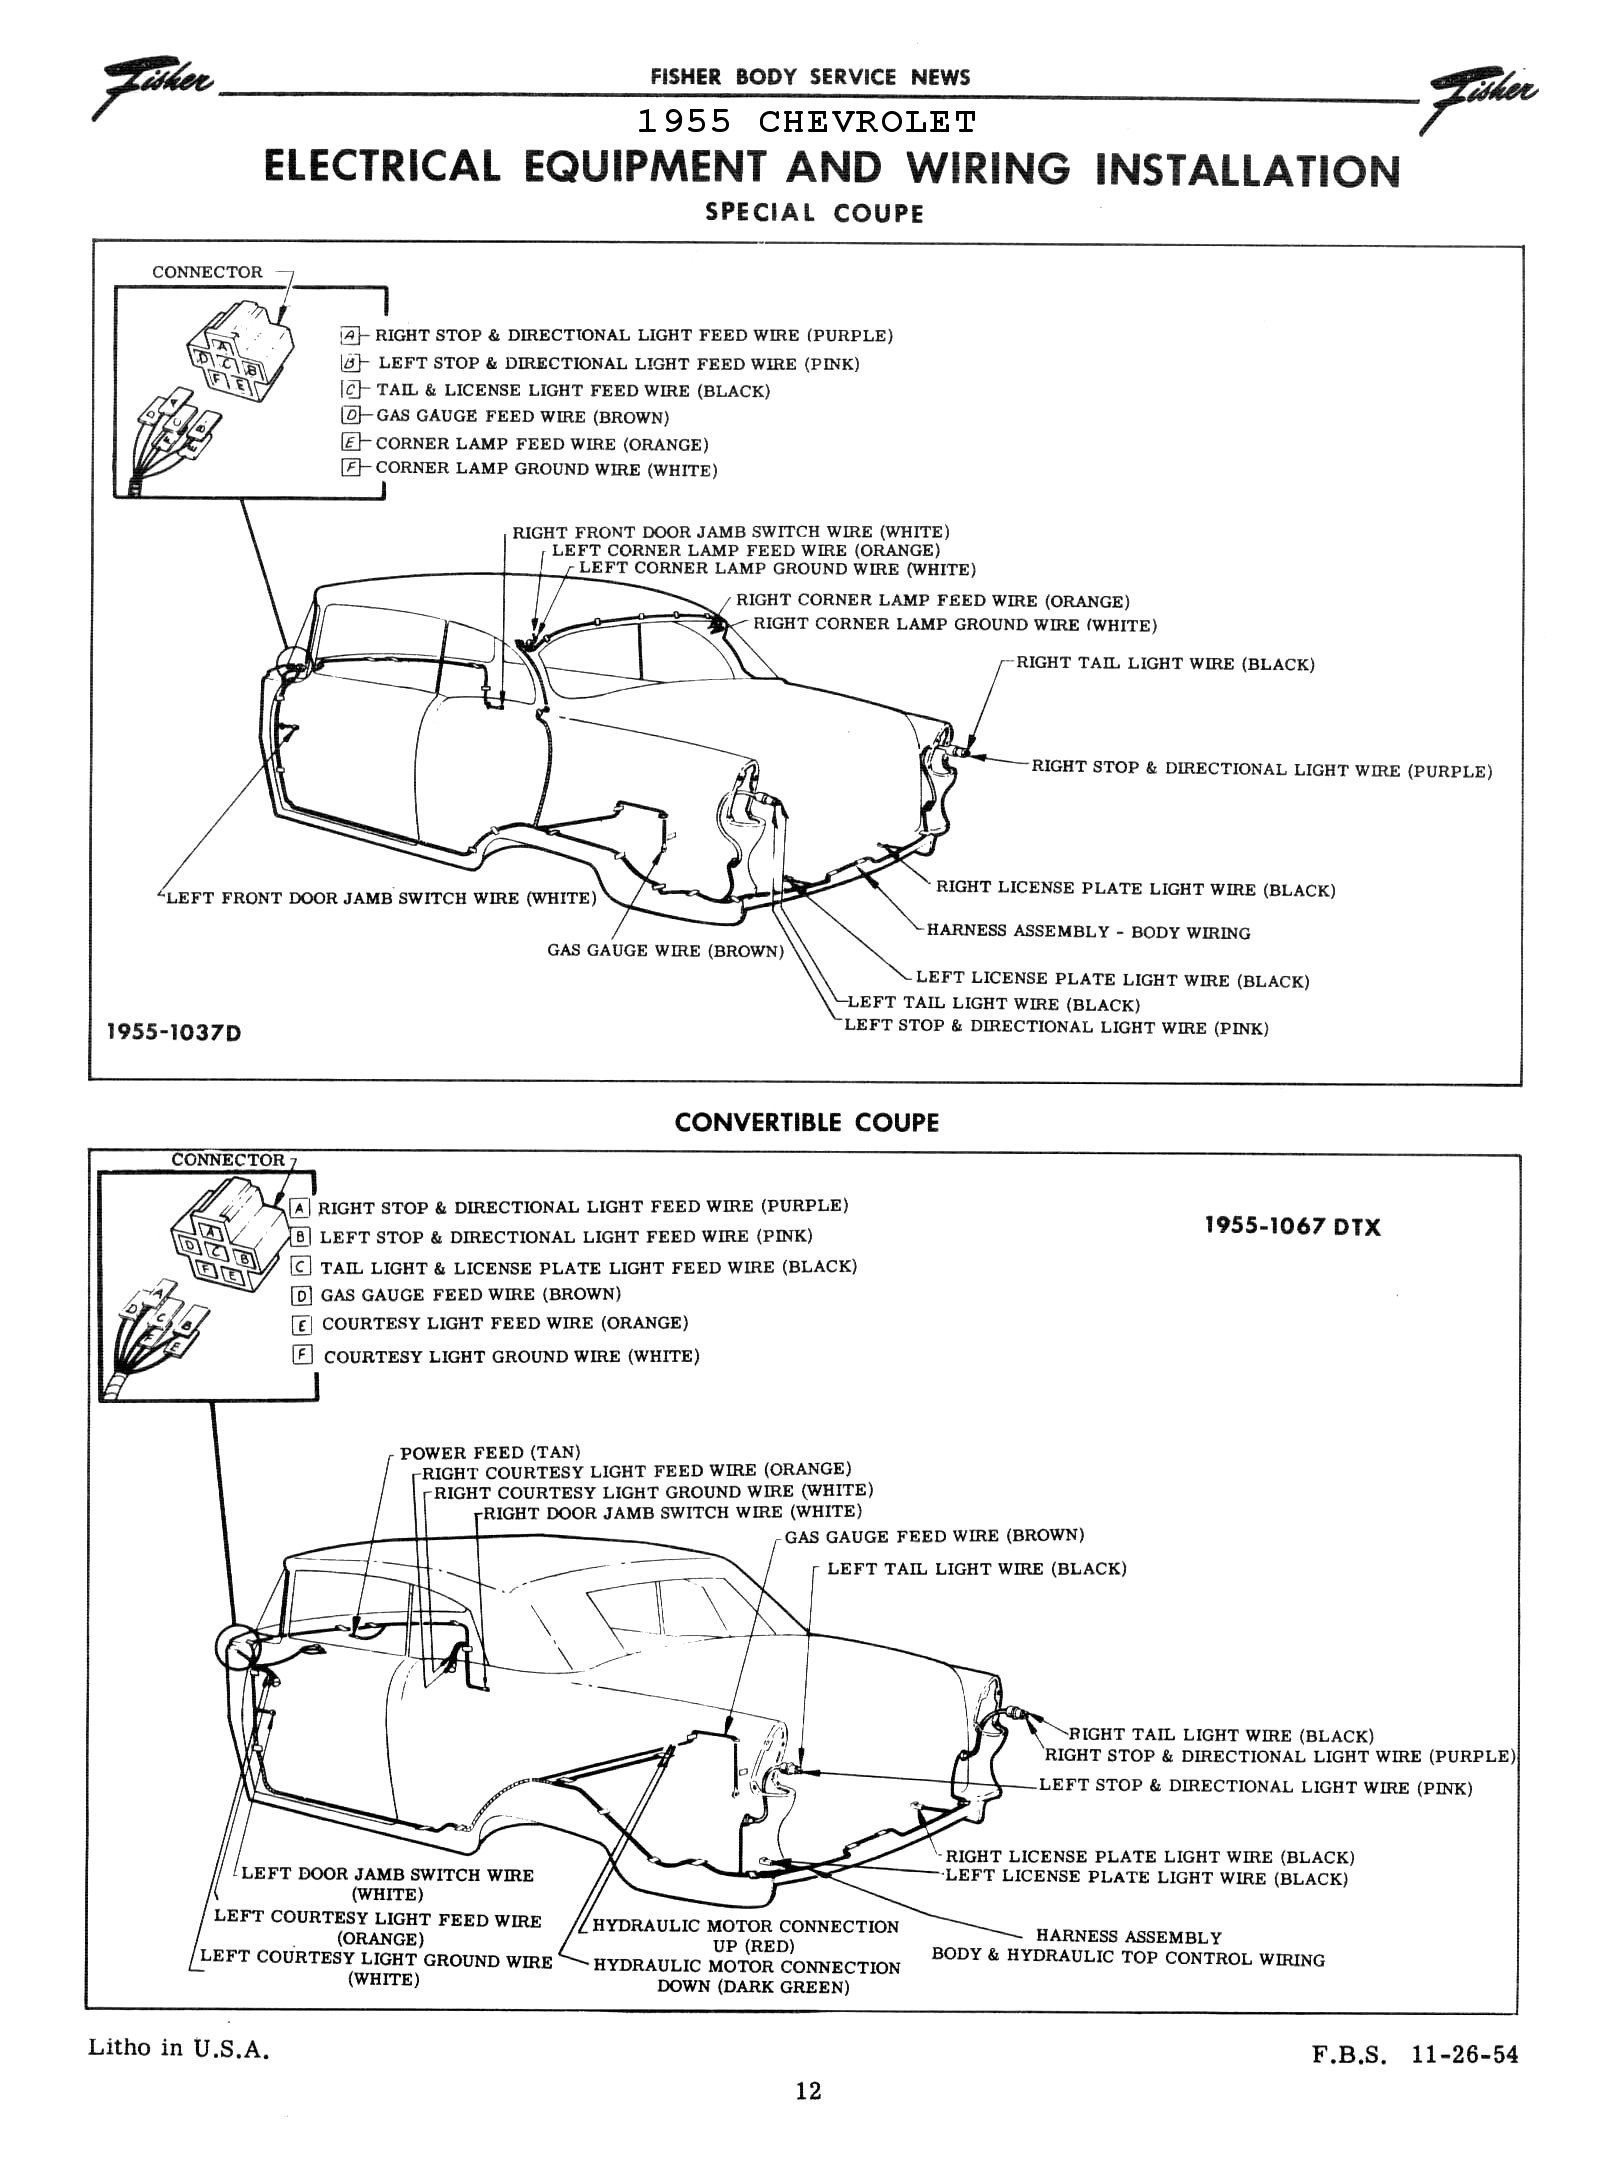 1955 chevy headlight switch wiring wire management \u0026 wiring diagram 56 Bel Air Dash